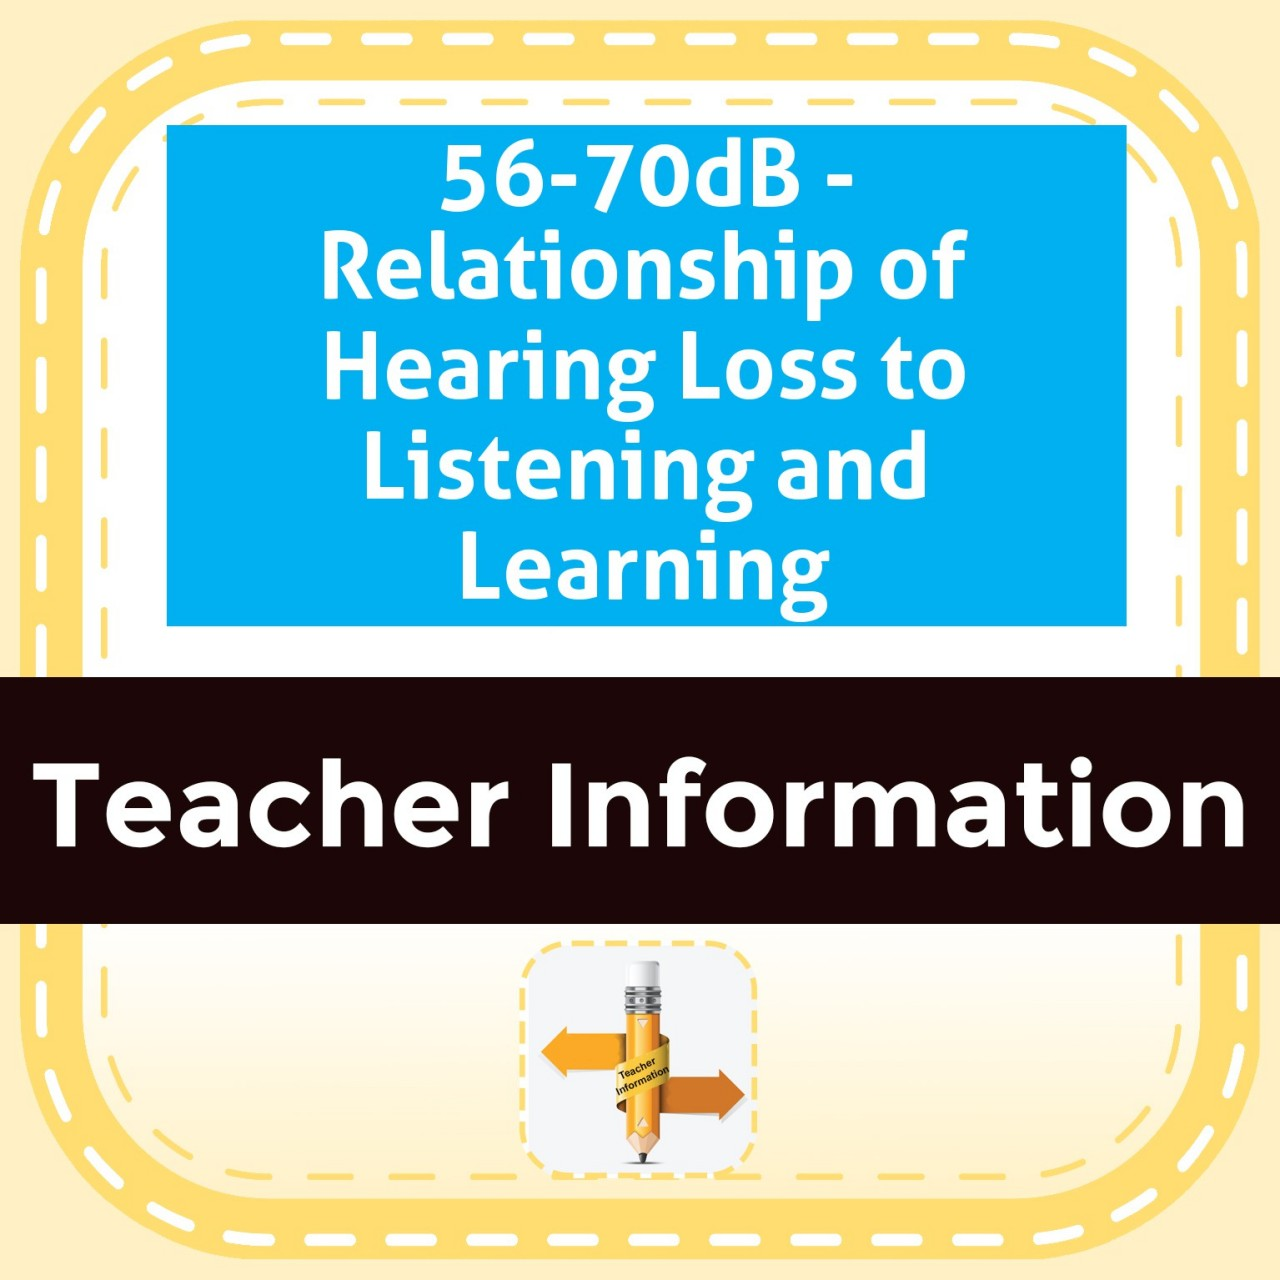 56-70dB - Relationship of Hearing Loss to Listening and Learning